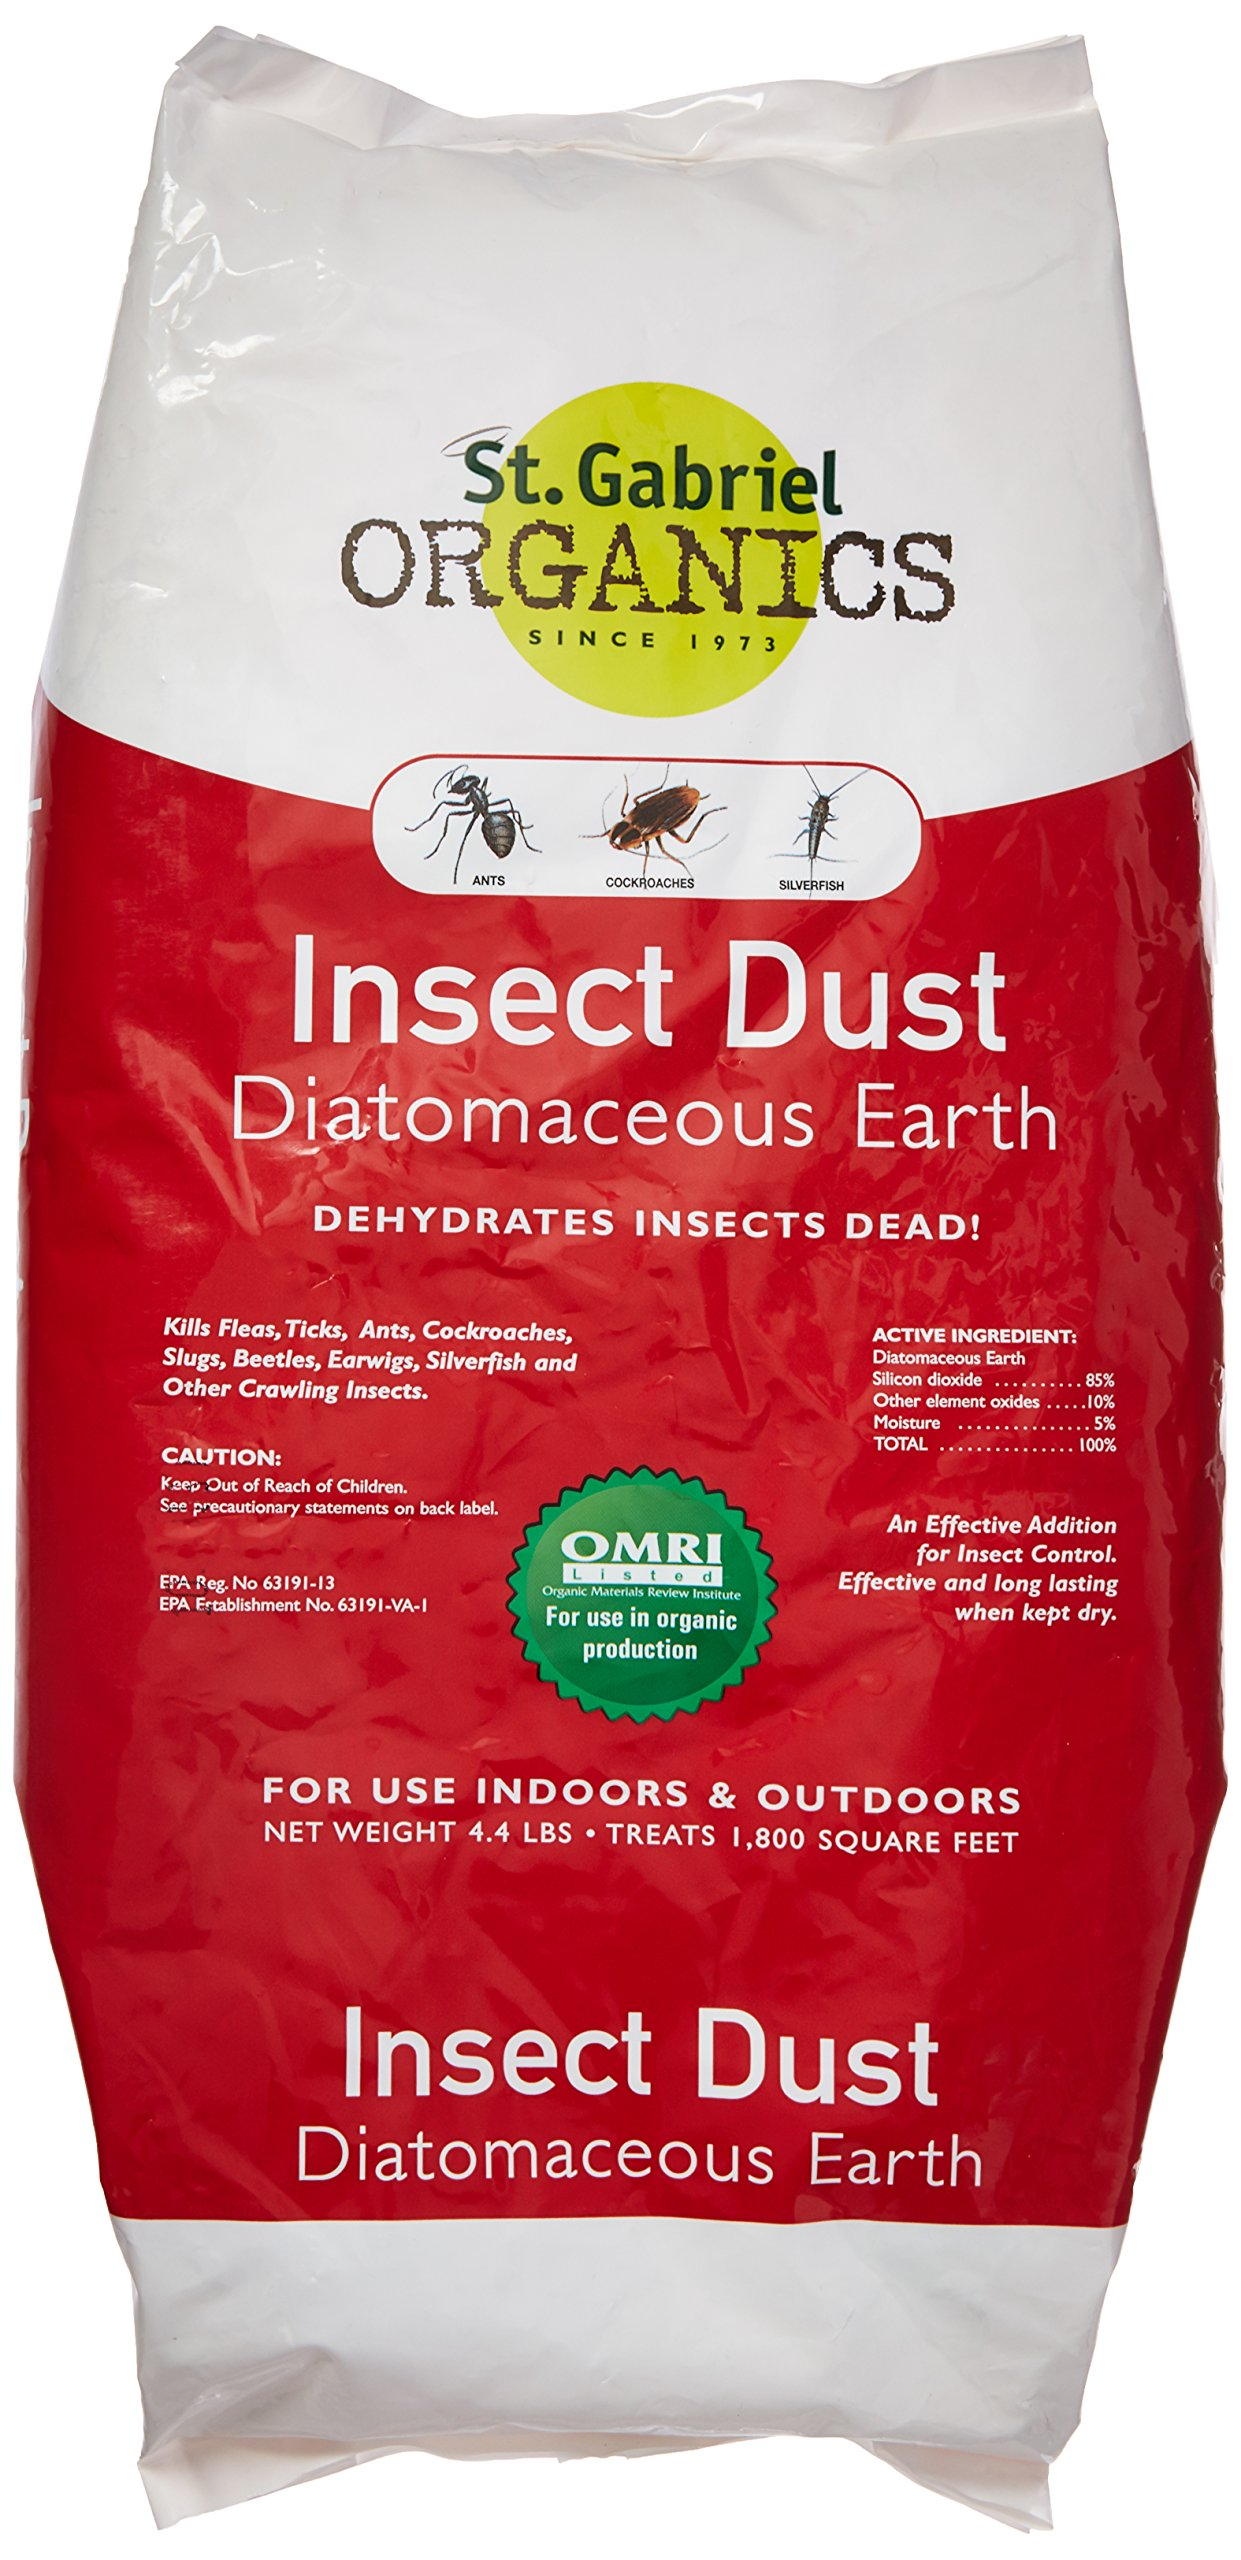 St. Gabriel Laboratories All Natural Indoor/Outdoor Insect Dust Repellent - 4.4 lb Bag 50020-7